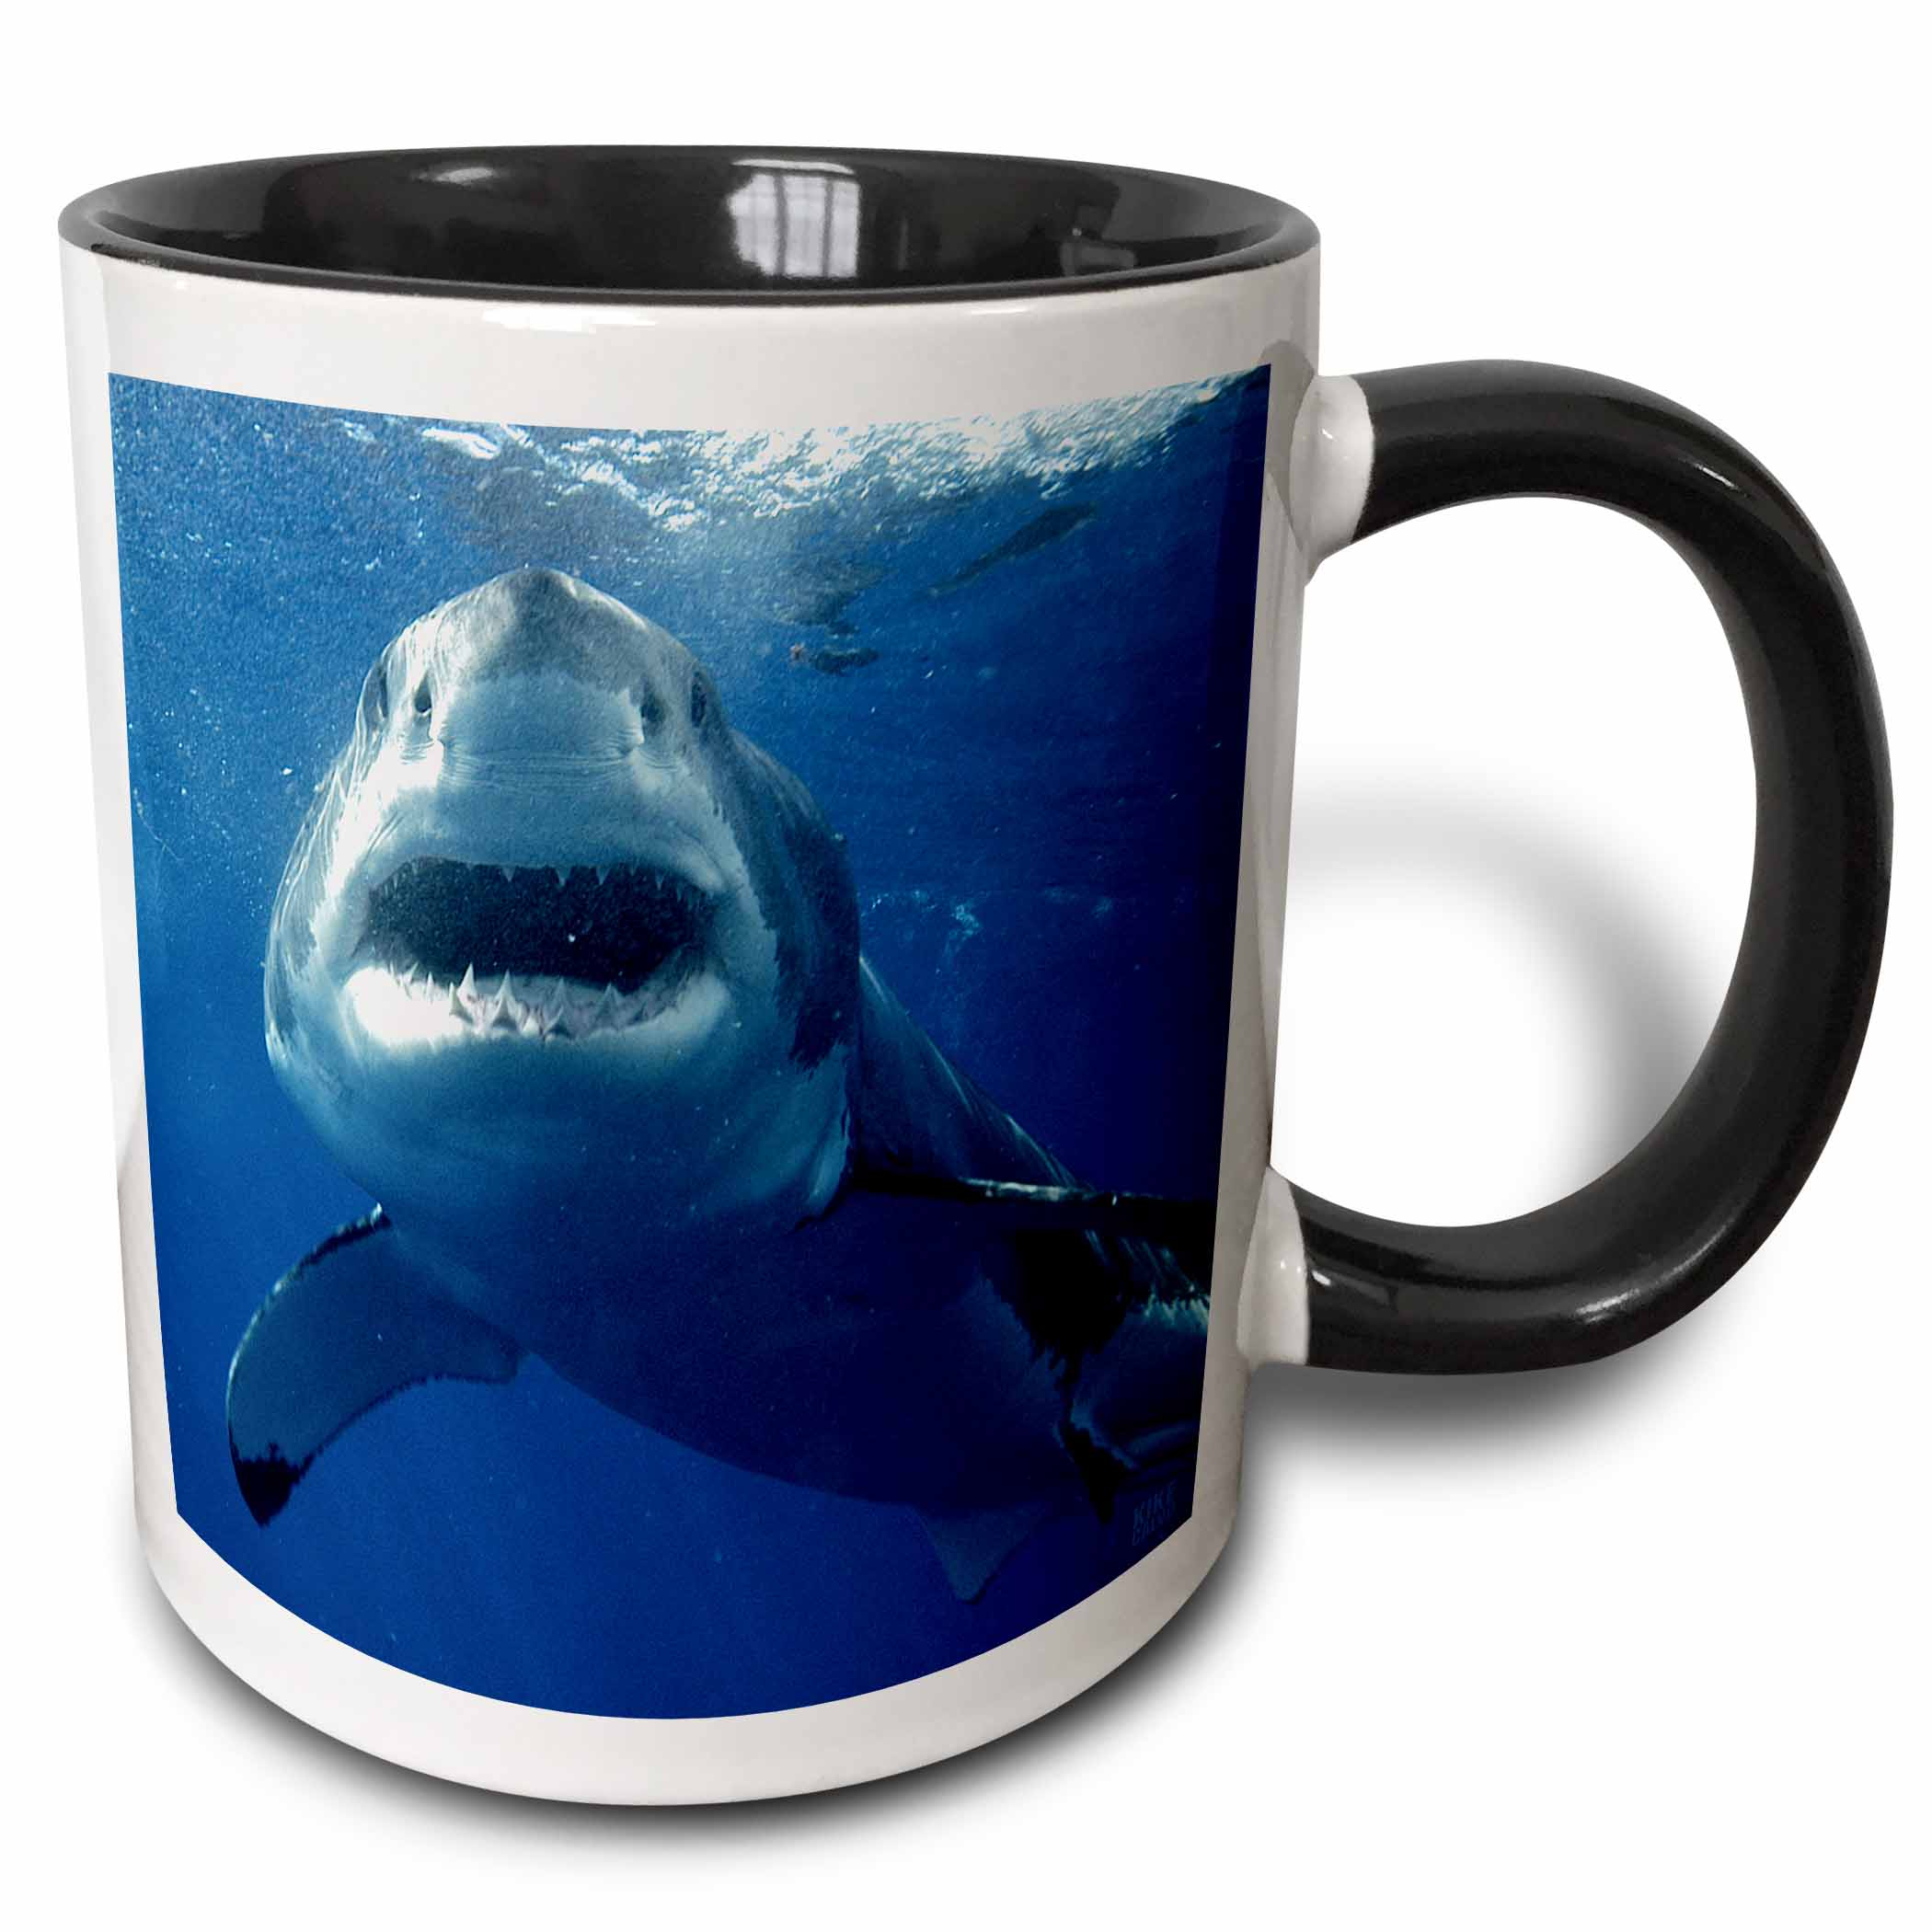 3dRose Great White Shark - Two Tone Black Mug, 11-ounce